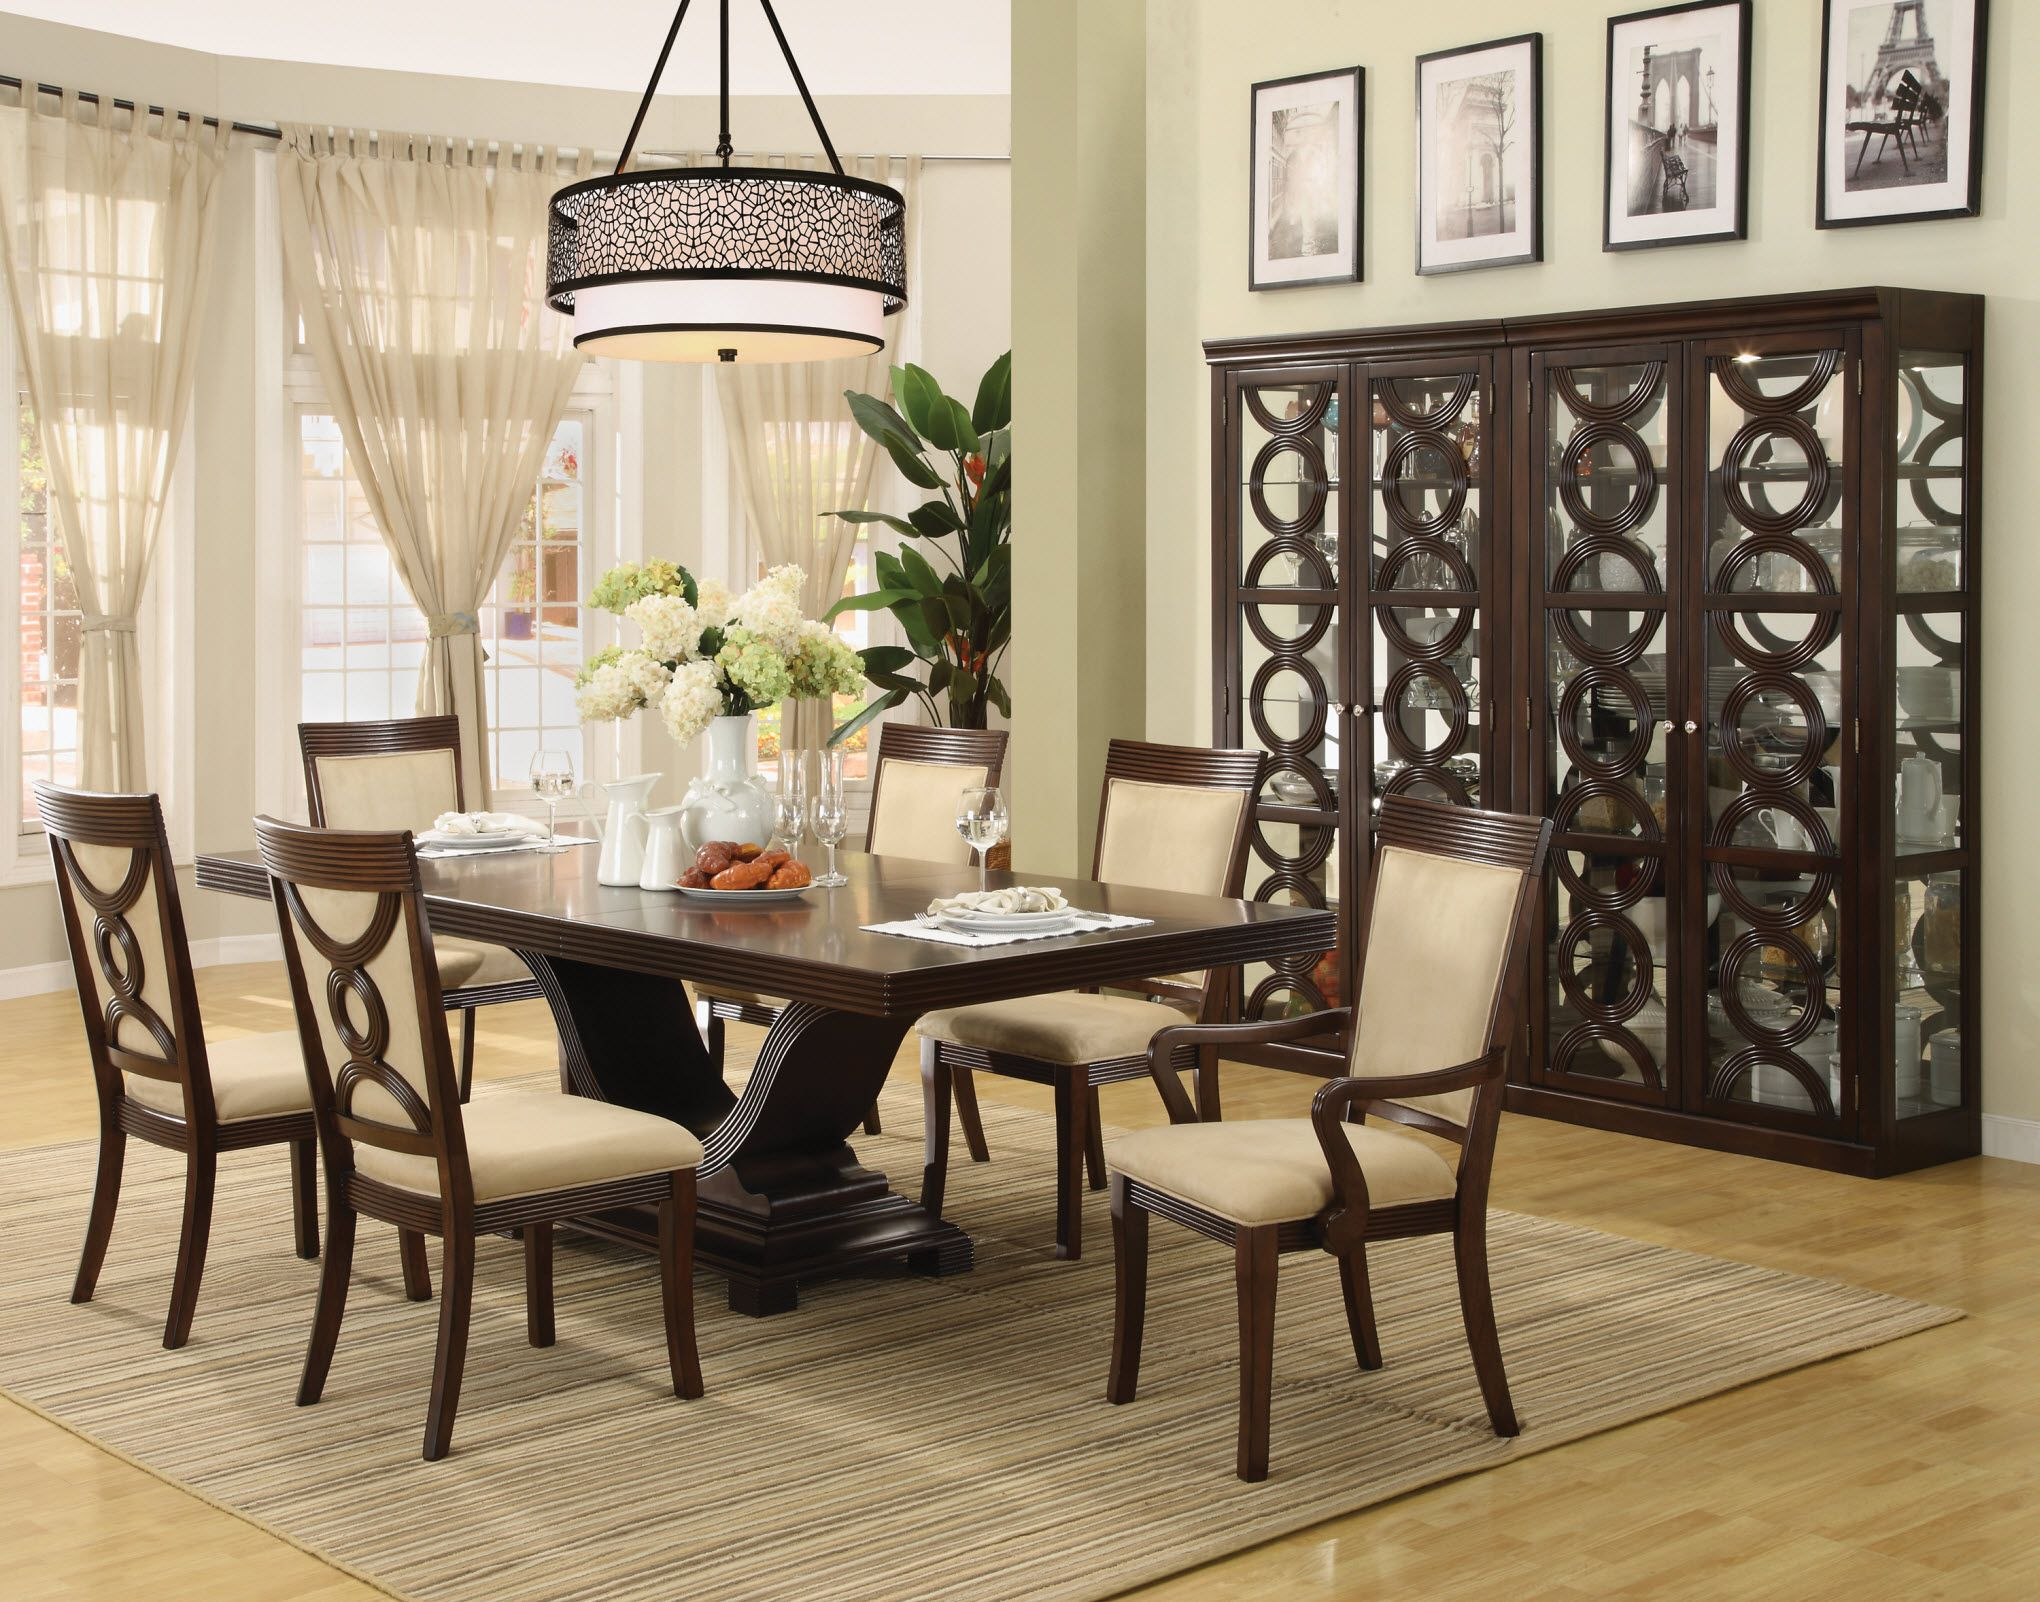 Kingston Collection Elegant Dining Room Dining Room Table Centerpieces Formal Dining Room Table